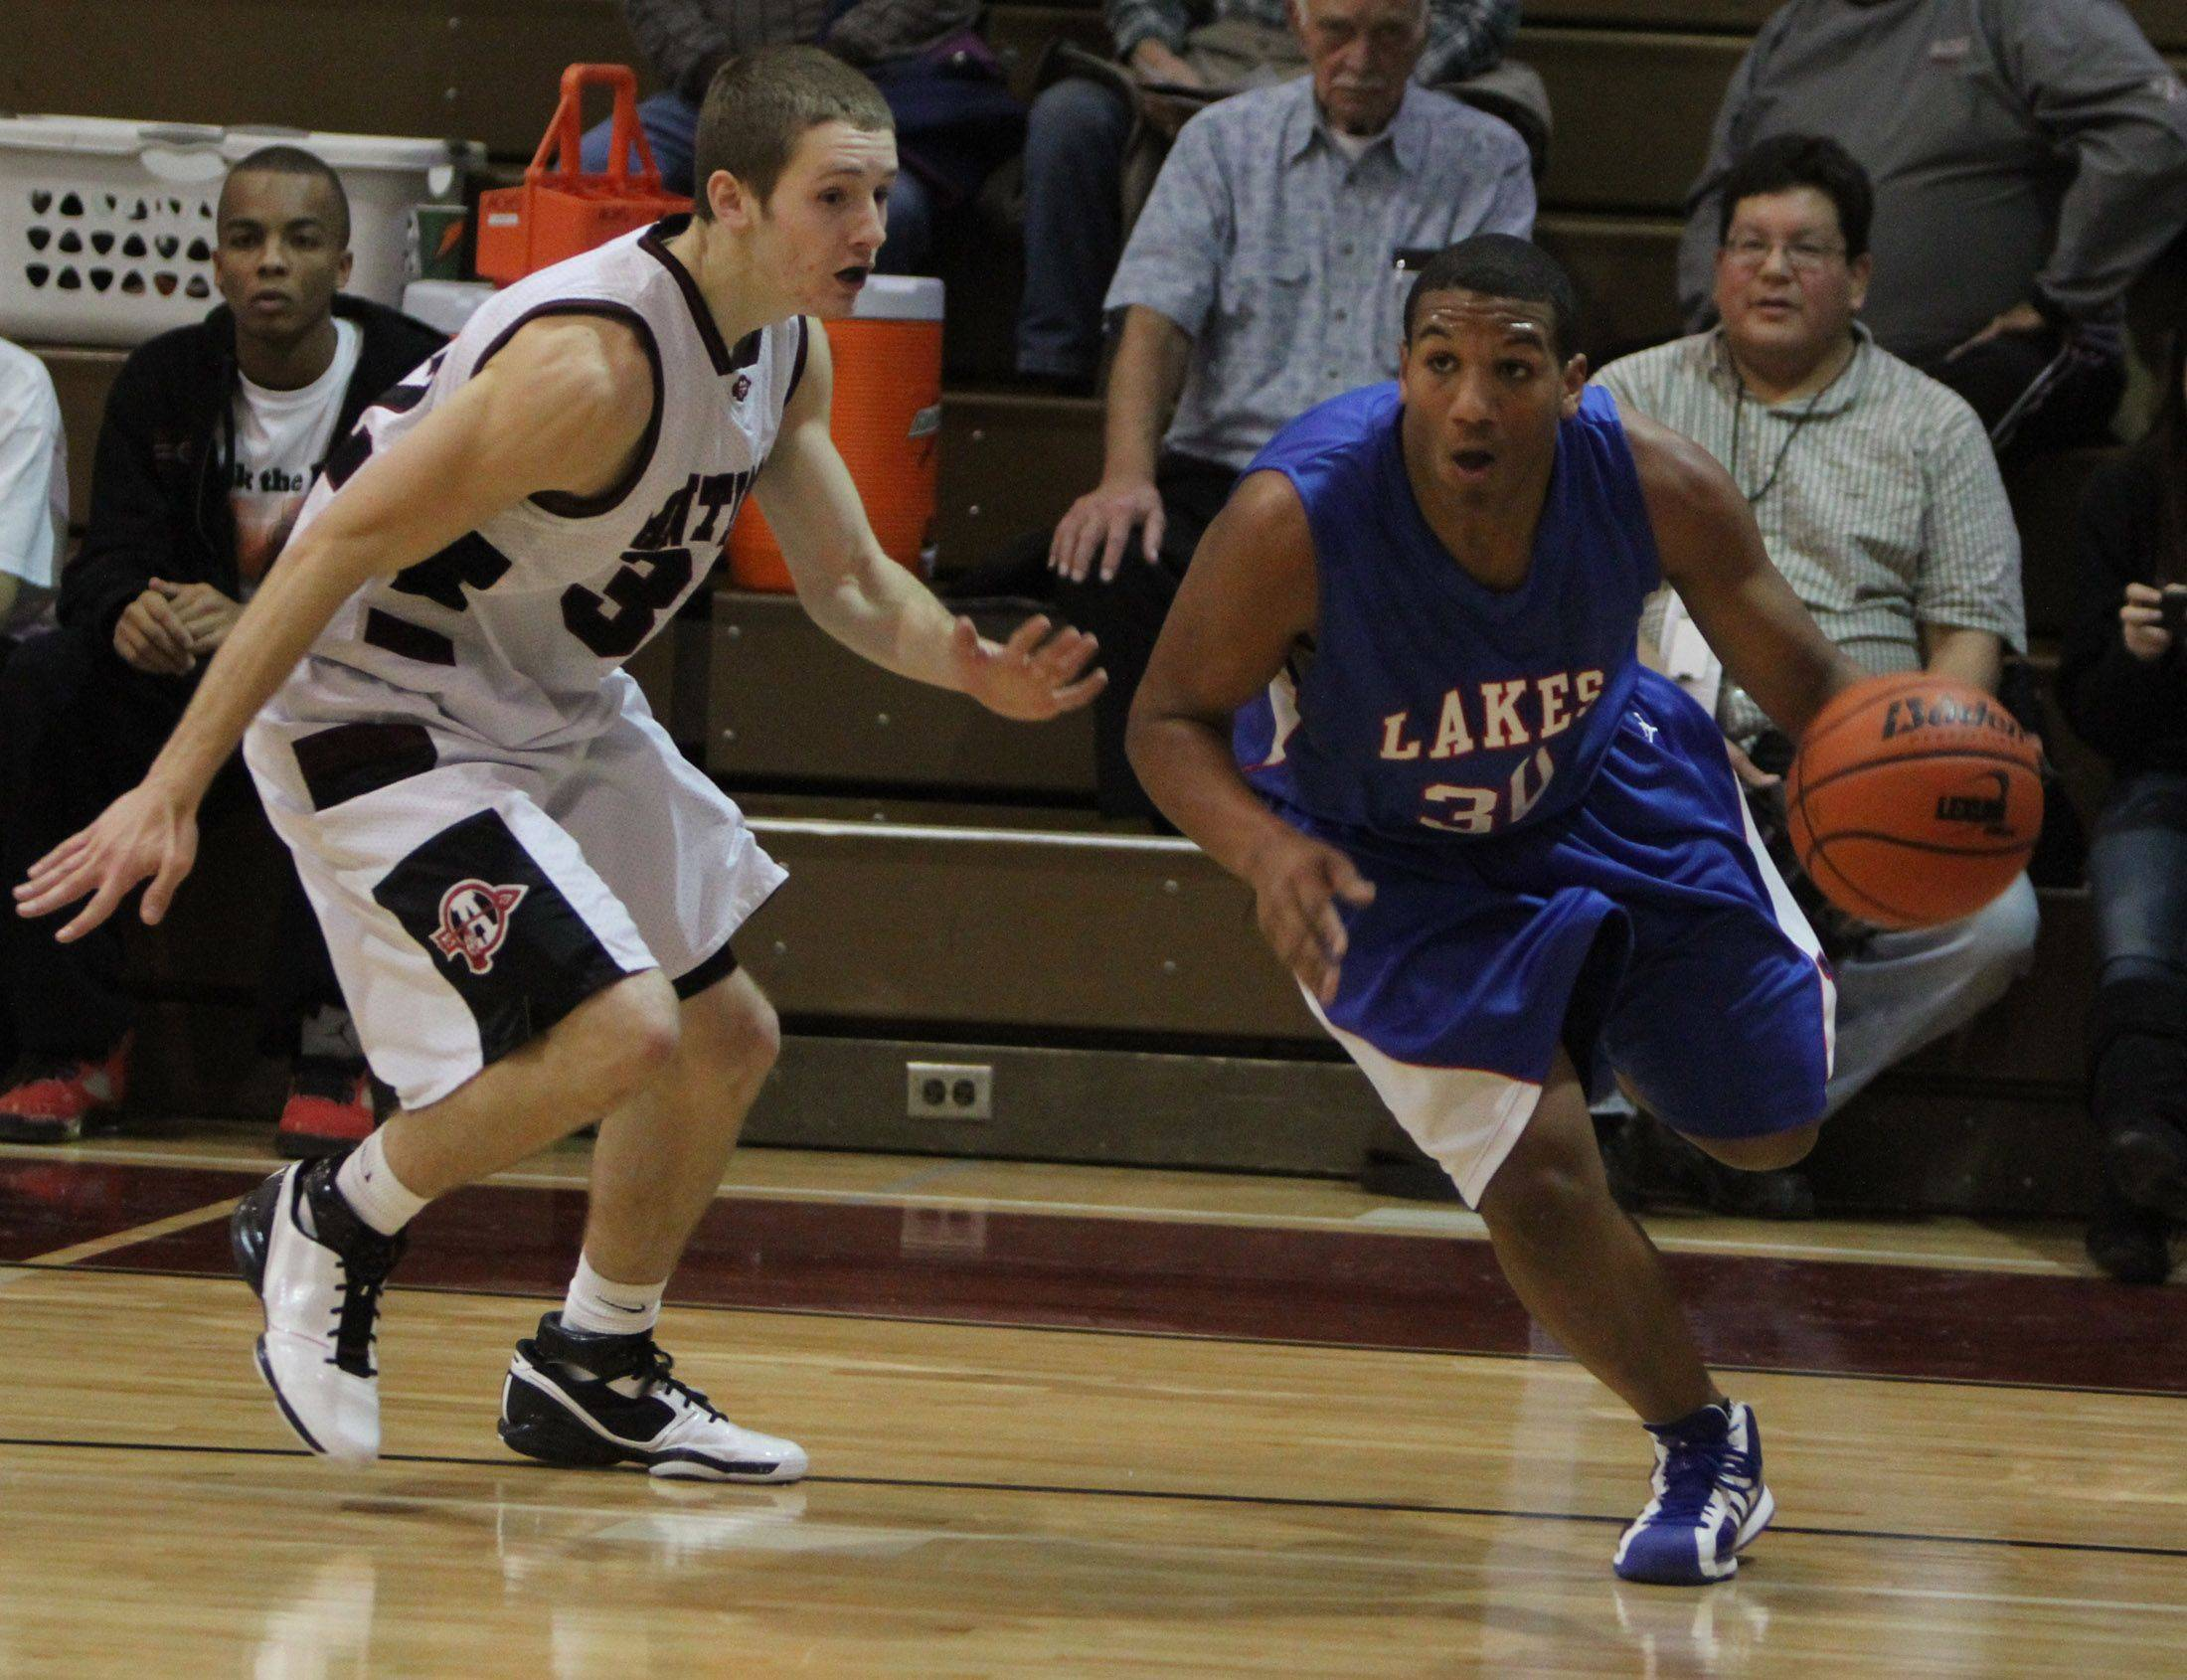 Images from the Lakes at Antioch boys basketball game Friday, December 10.